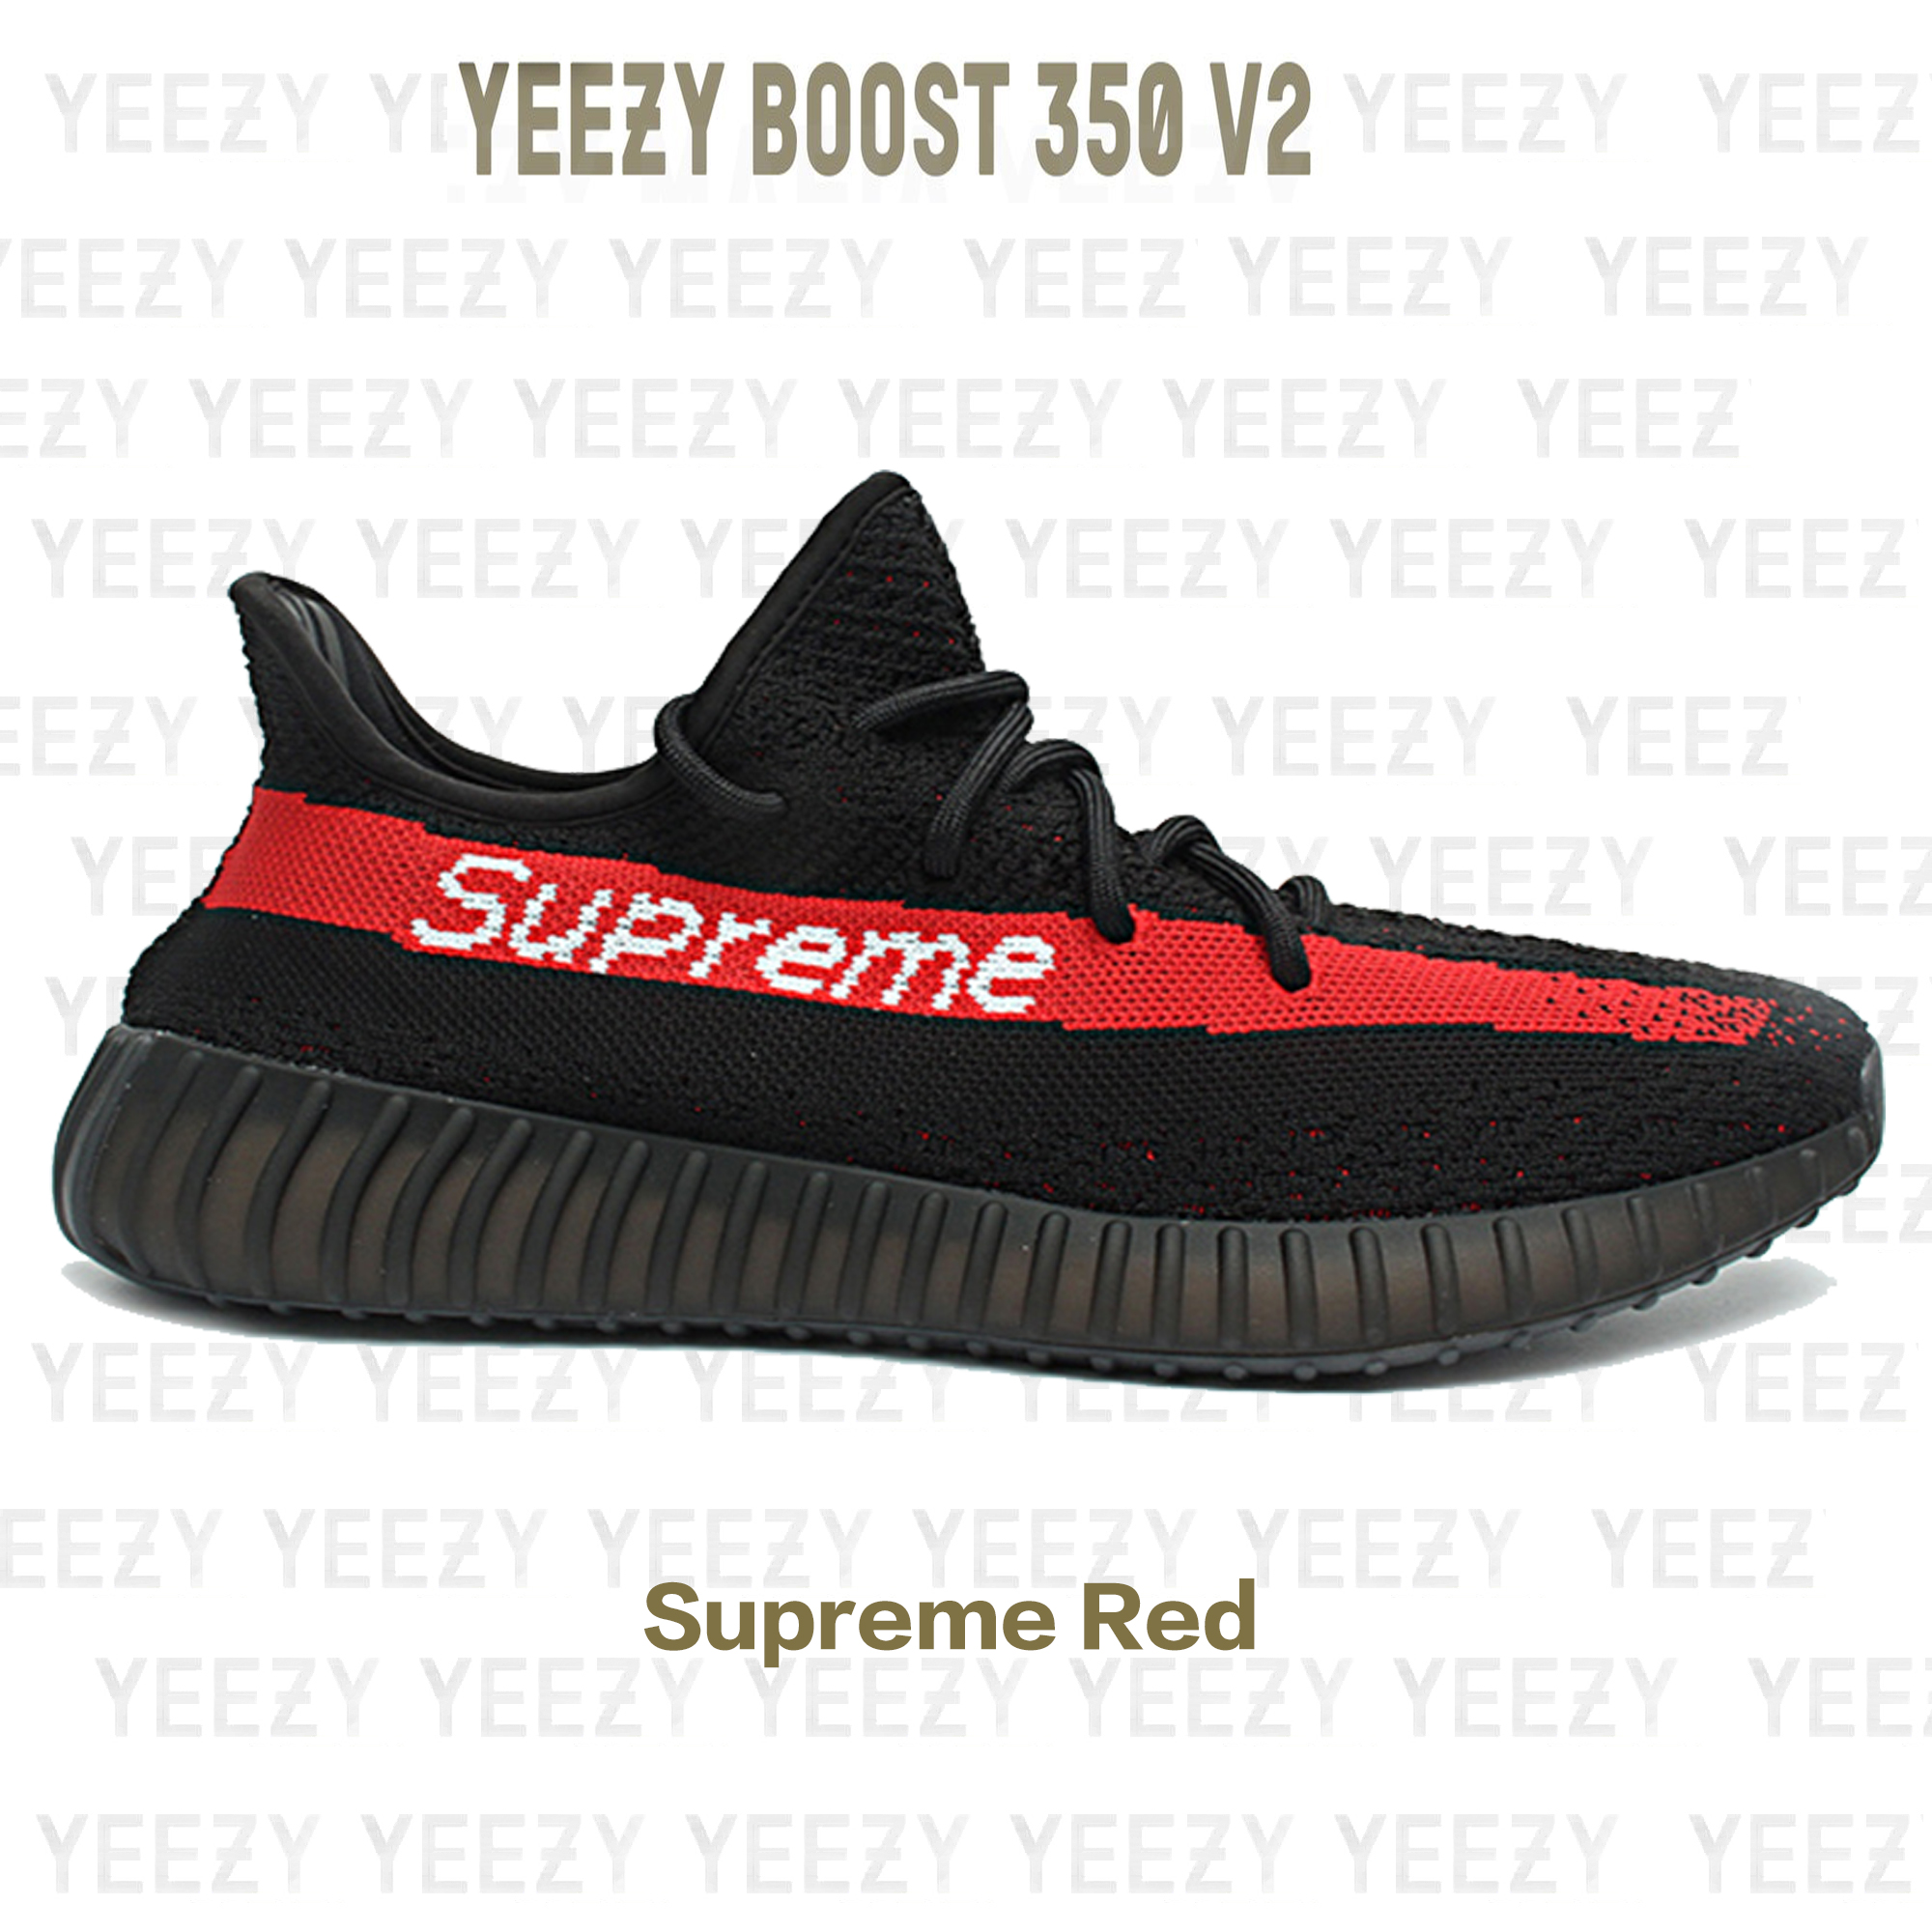 2e598bb0345 Yeezy 20boost 20350 20v2 20supreme 20red 20(1) original